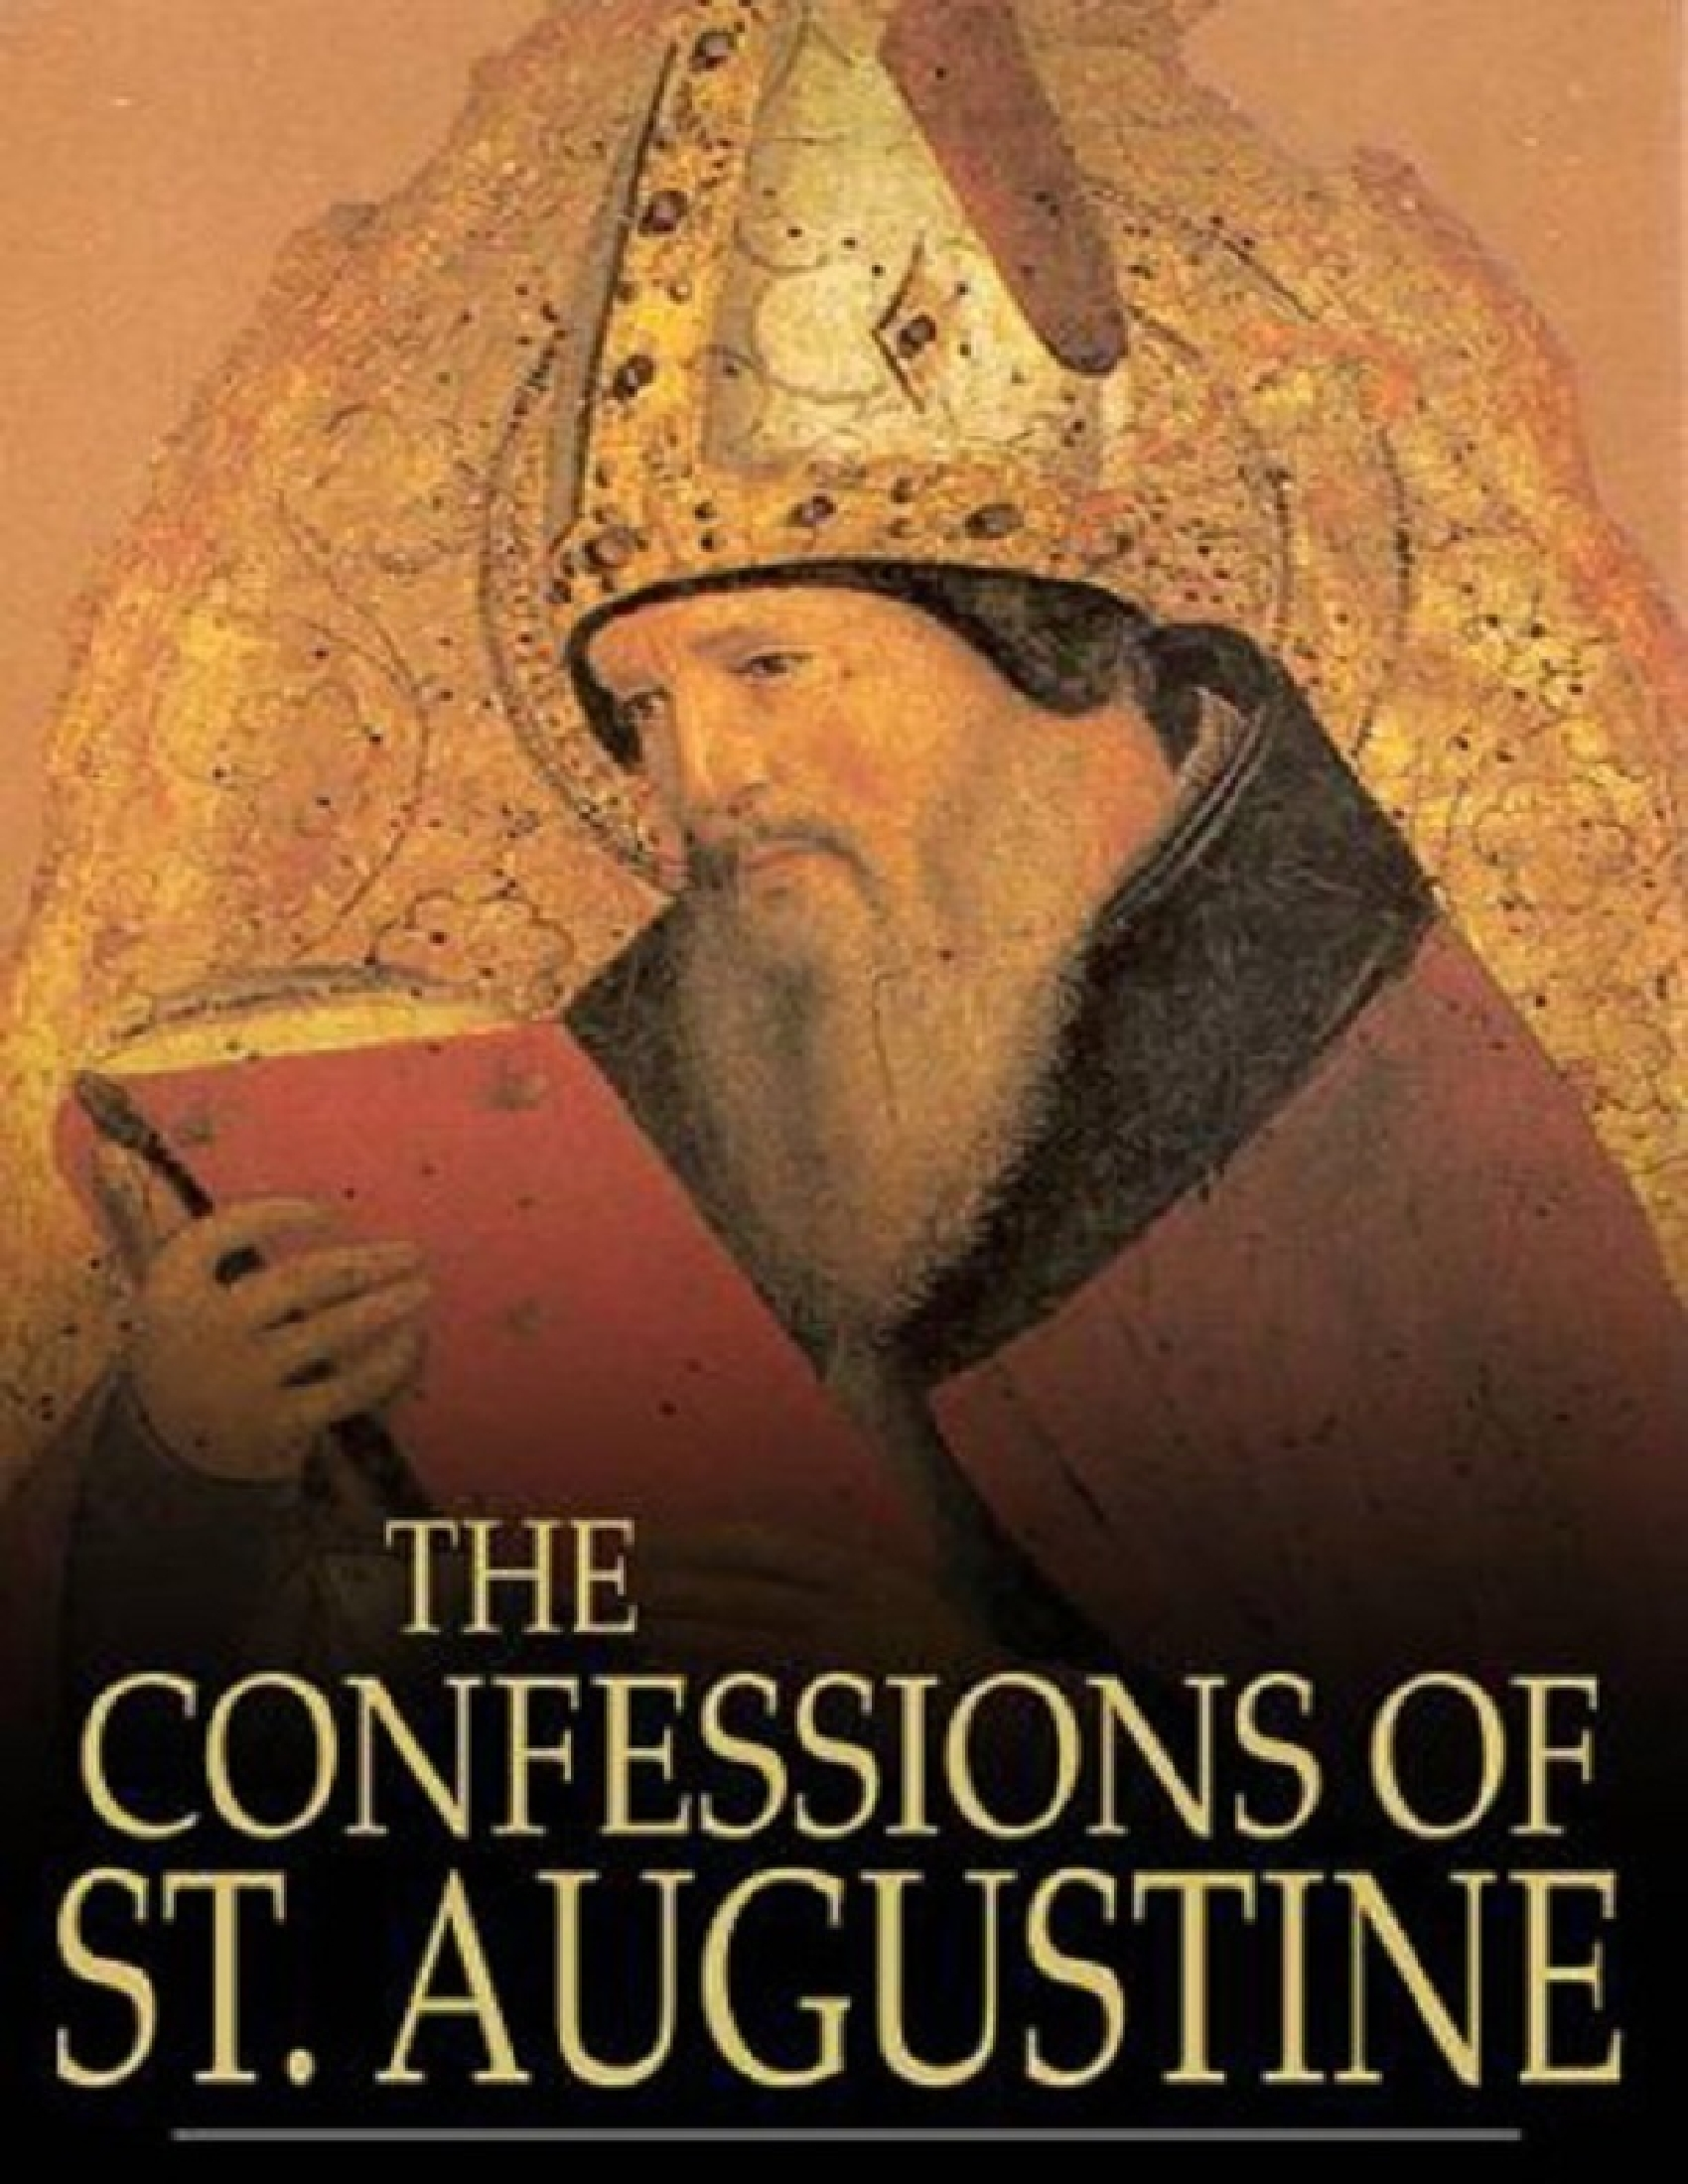 an analysis of christianity conversion in confessions by augustine Augustine's confessions is undoubtedly among the most widely read  that there  are differences between christianity and neoplatonism,  of i corinthians 7:27– 35, which finally completes his conversion  the unity and rest in god that is the  overall theme of the confessions.